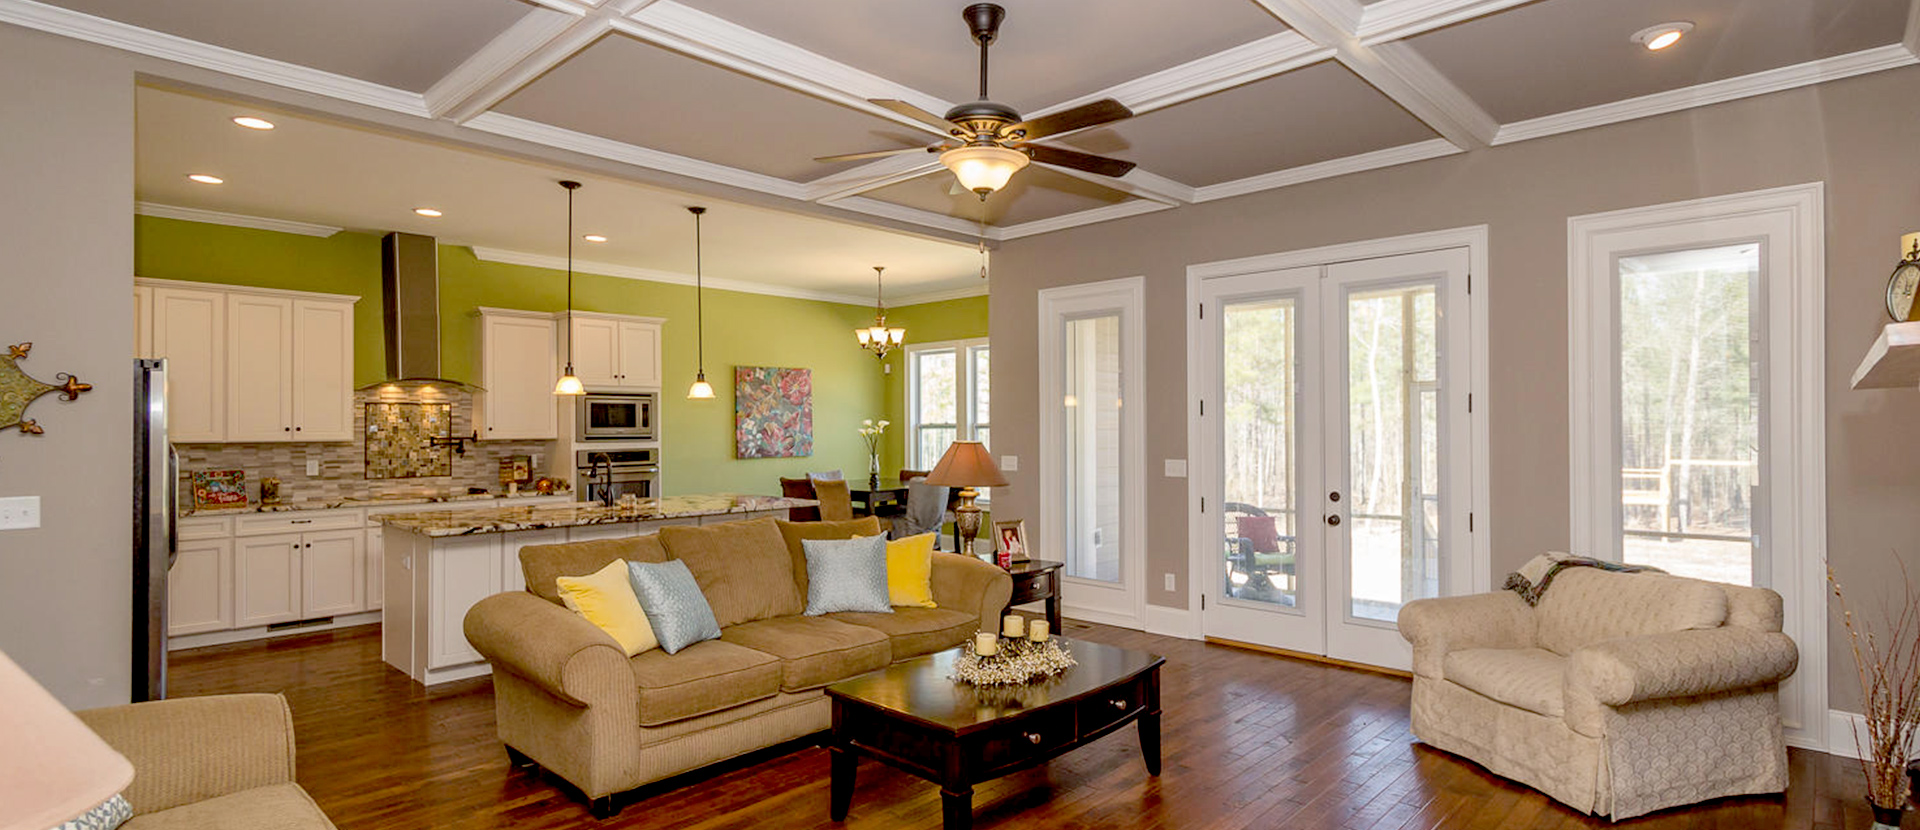 Open concept family room and kitchen Augusta S and H Construction custom home builder Augusta GA